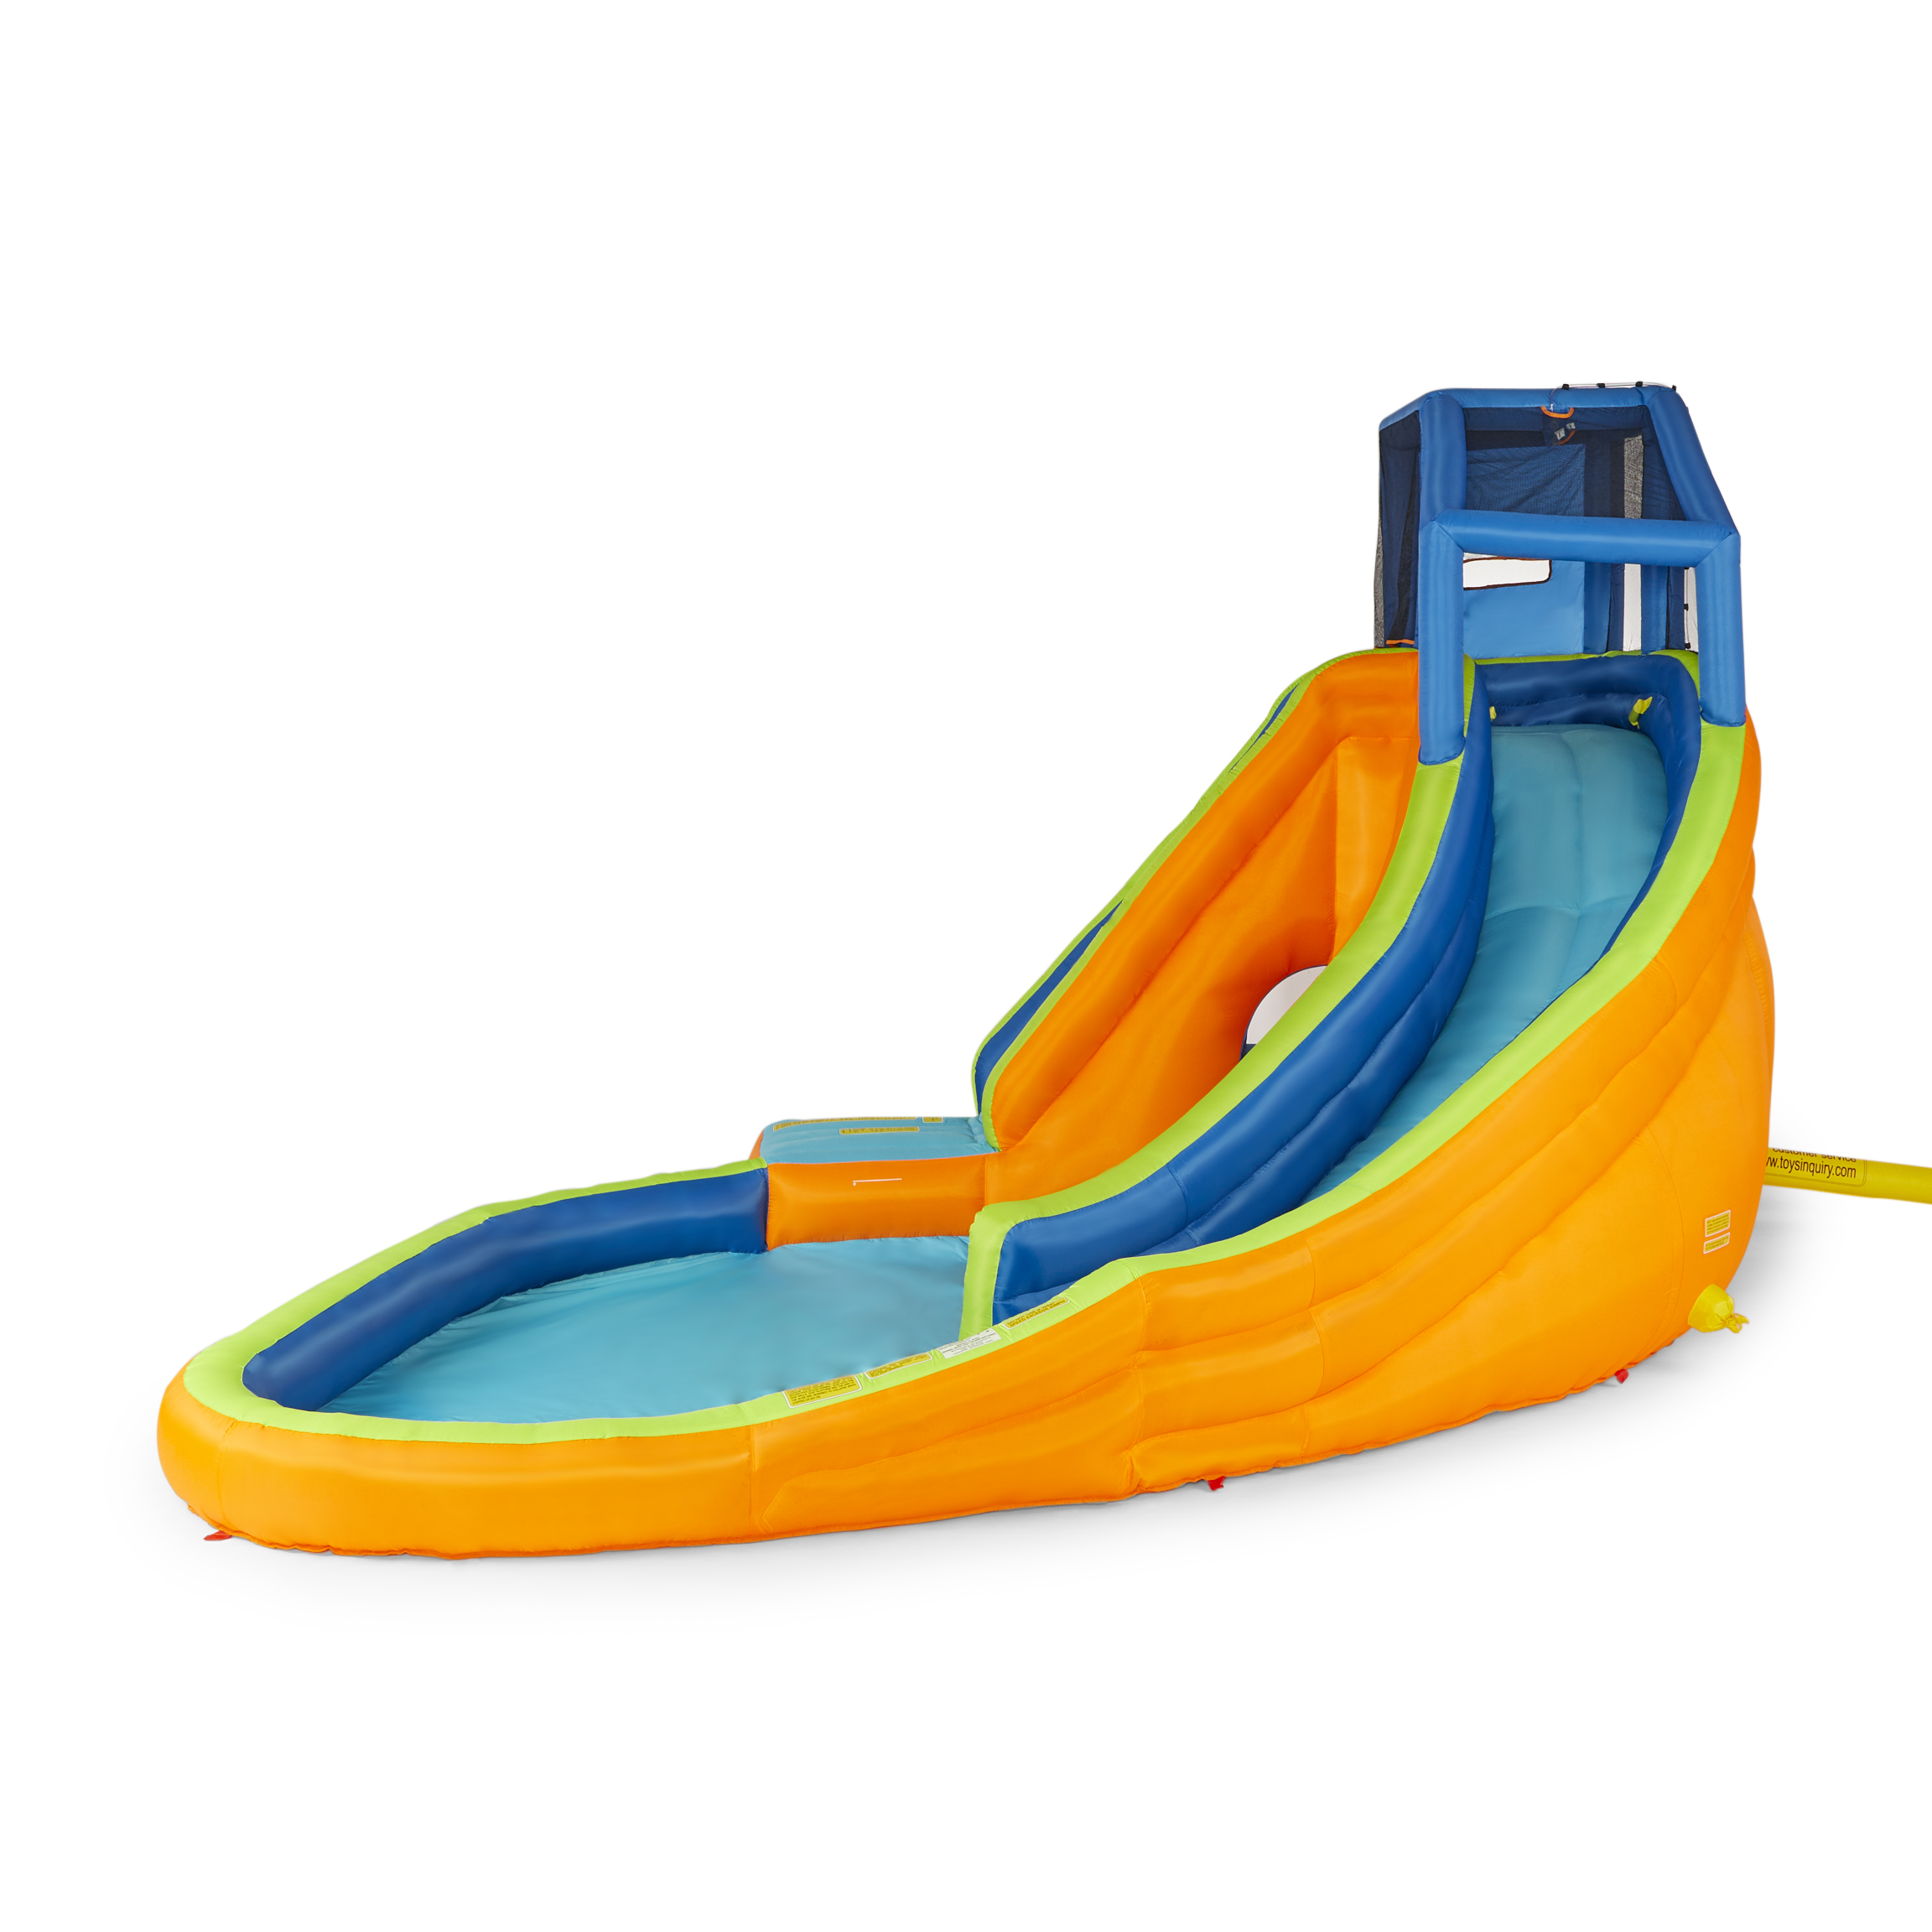 Banzai Sidewinder Falls Inflatable Water Park Play Pool With Slides And Cannons 191124235246